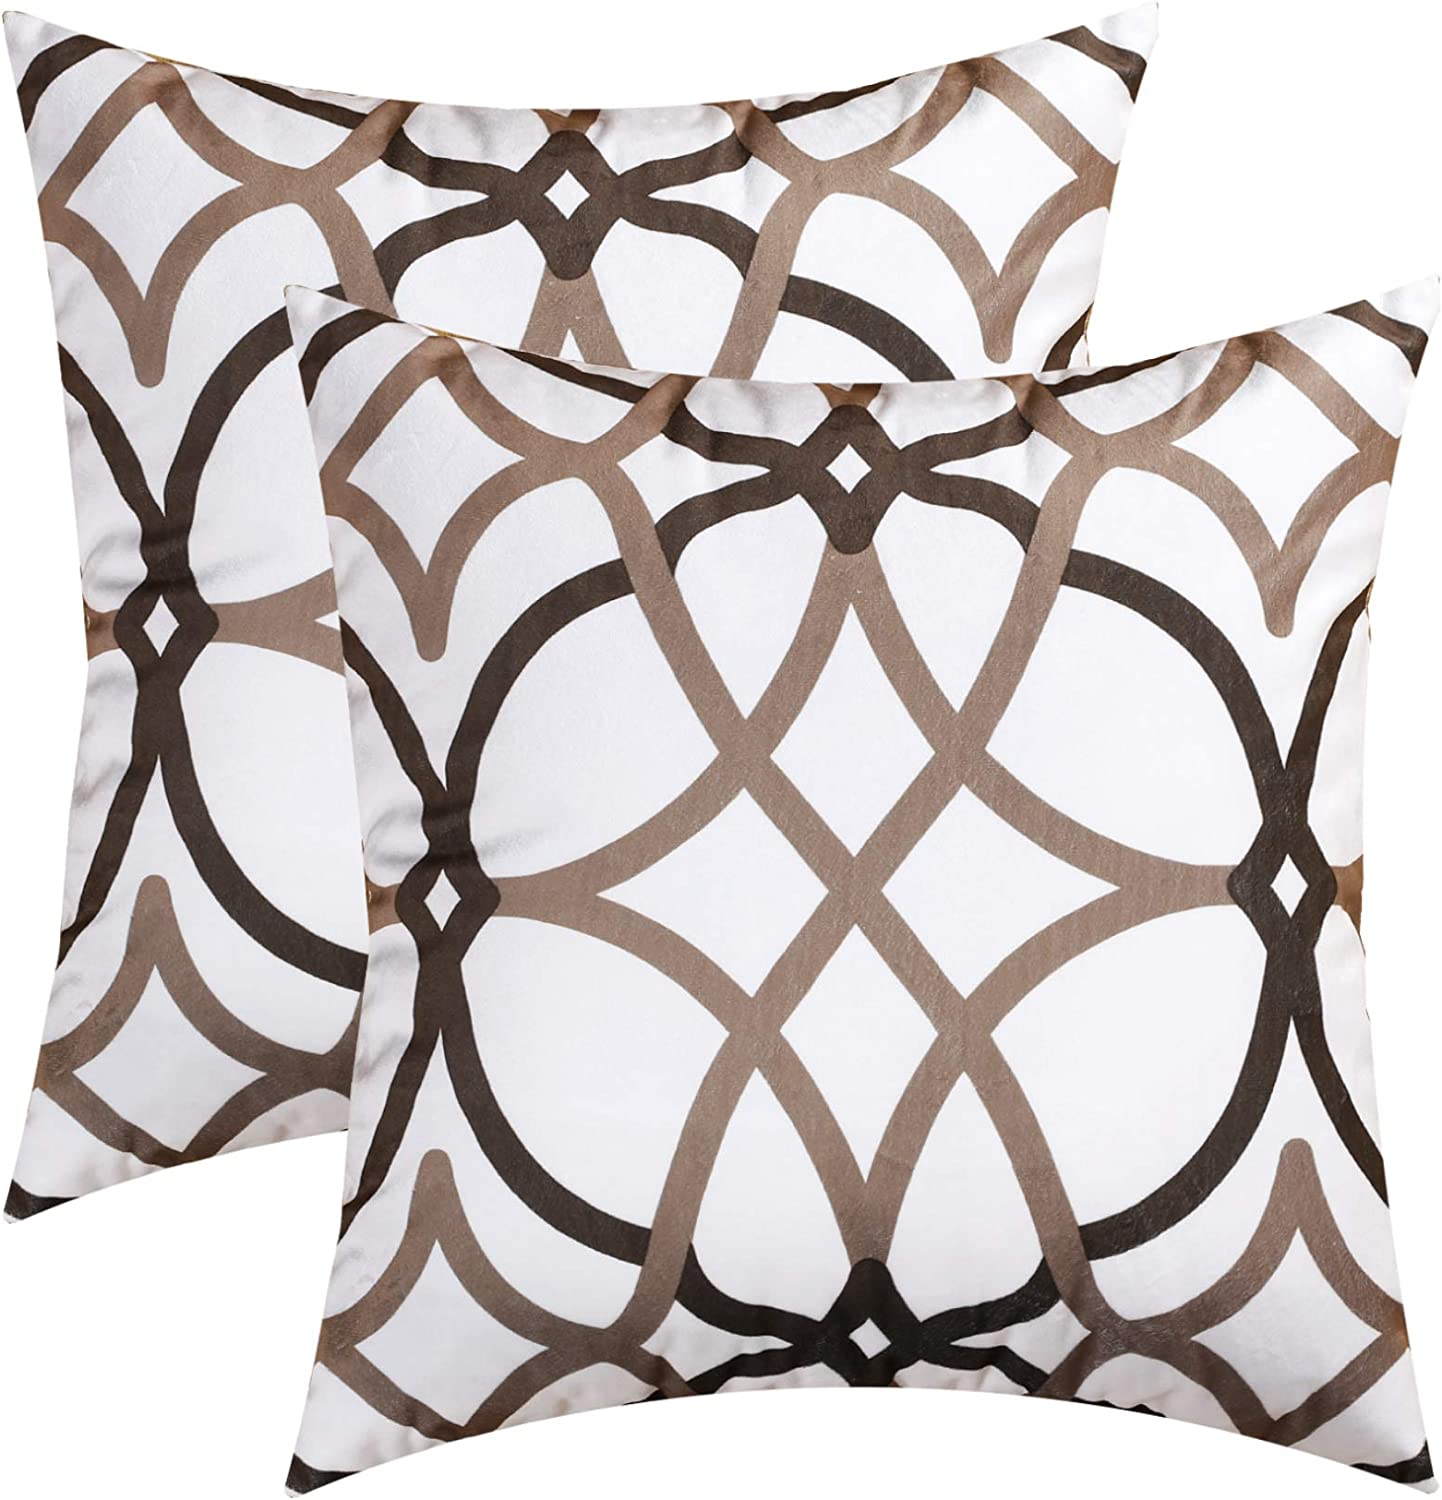 H.VERSAILTEX Original Velvet Cushion Covers 18x18 Throw Pillow Covers for Living Room (Set of 2) Luxury Solid Modern Decorative Pillows for Chair/Sofa/Couch Bed, Taupe and Brown Geo Pattern